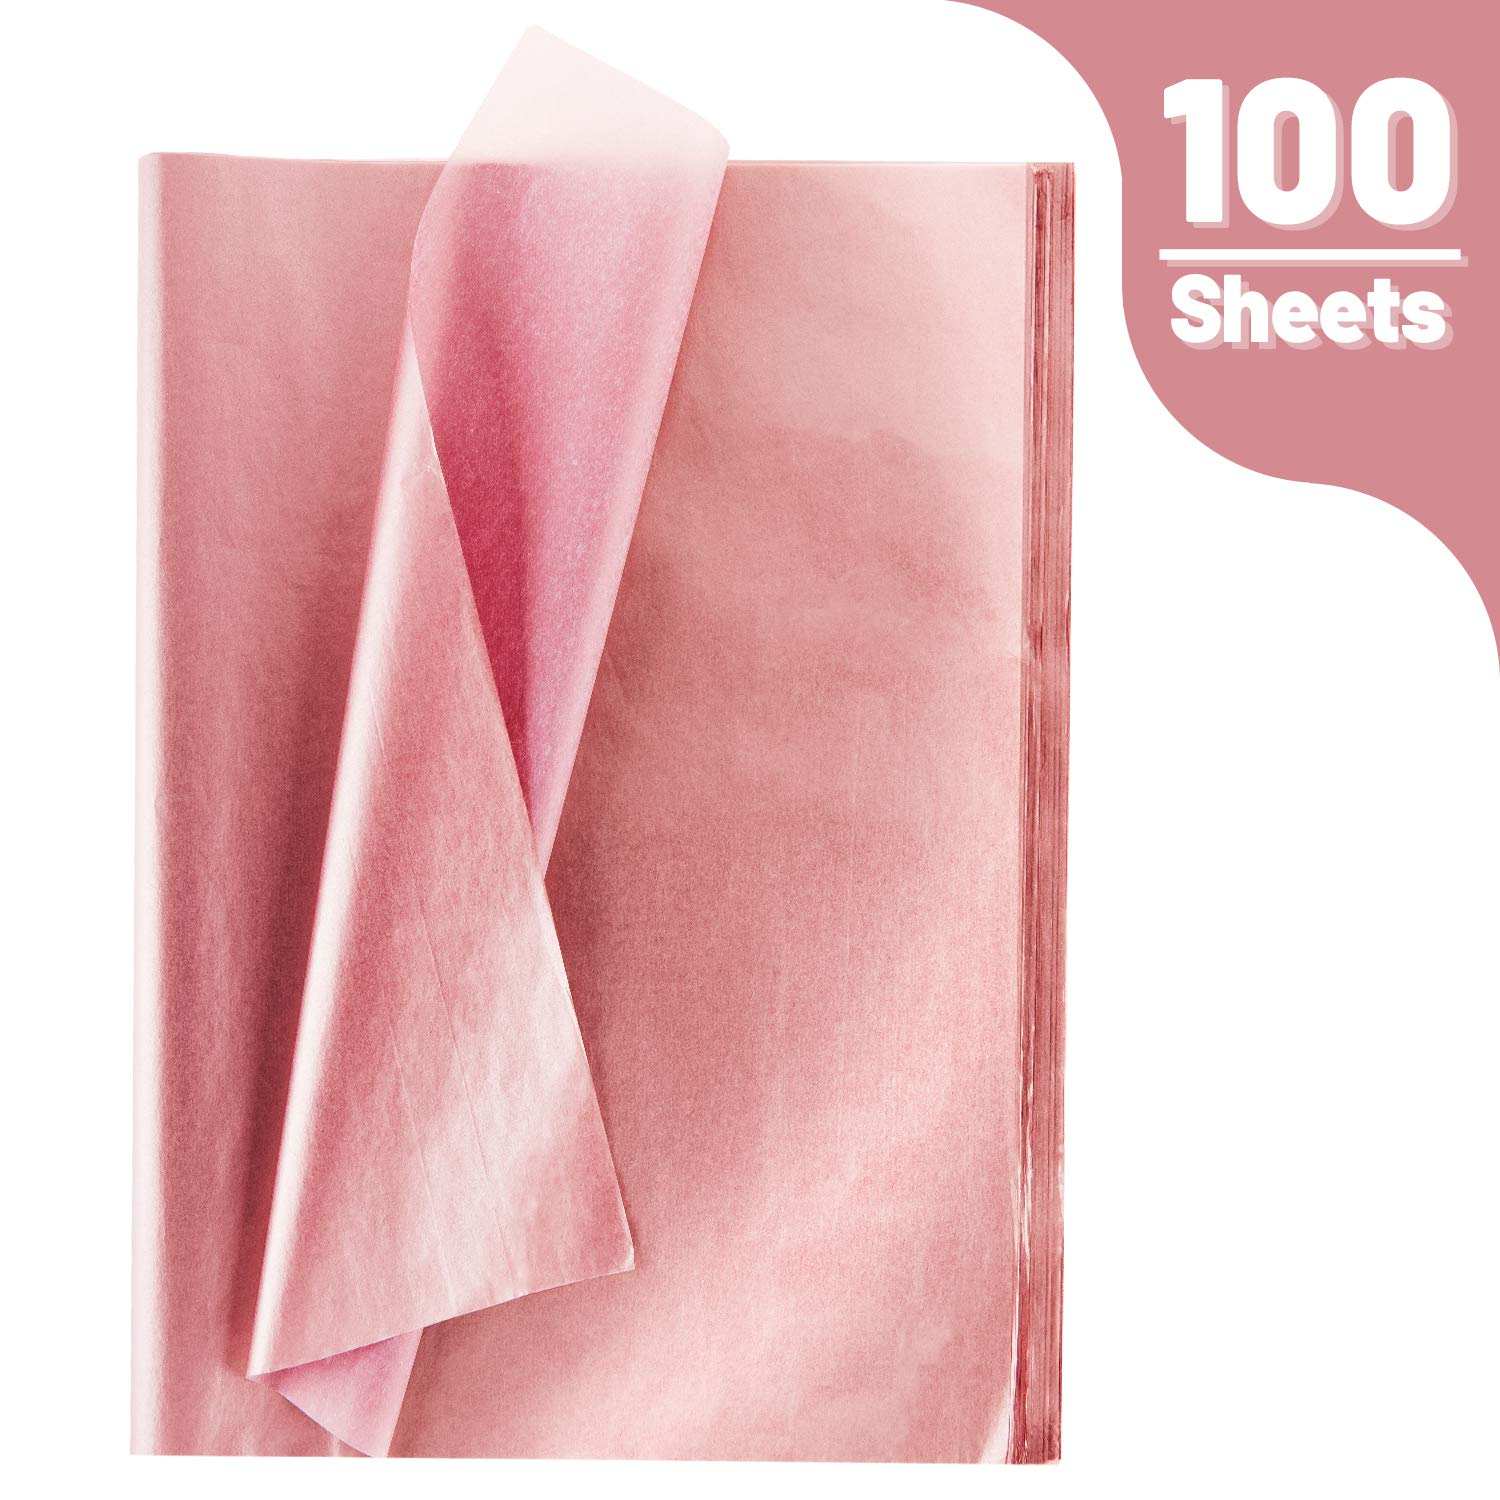 4 Sheets METALLIC SILVER Tissue Paper Gift Wrapping Acid Free 50x70cm